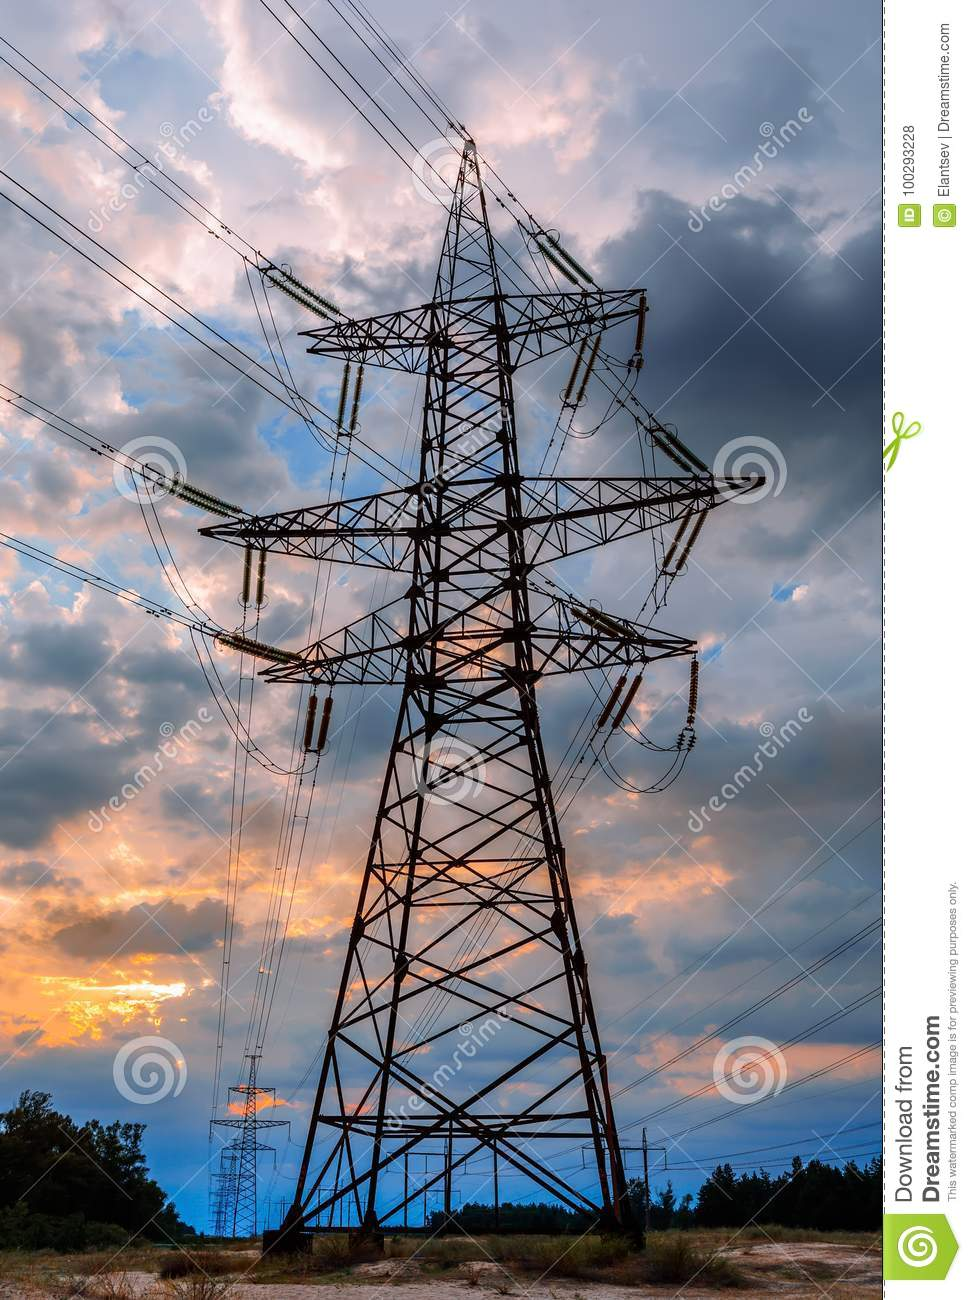 Electricity transmission pylon silhouetted against blue sky at dusk.